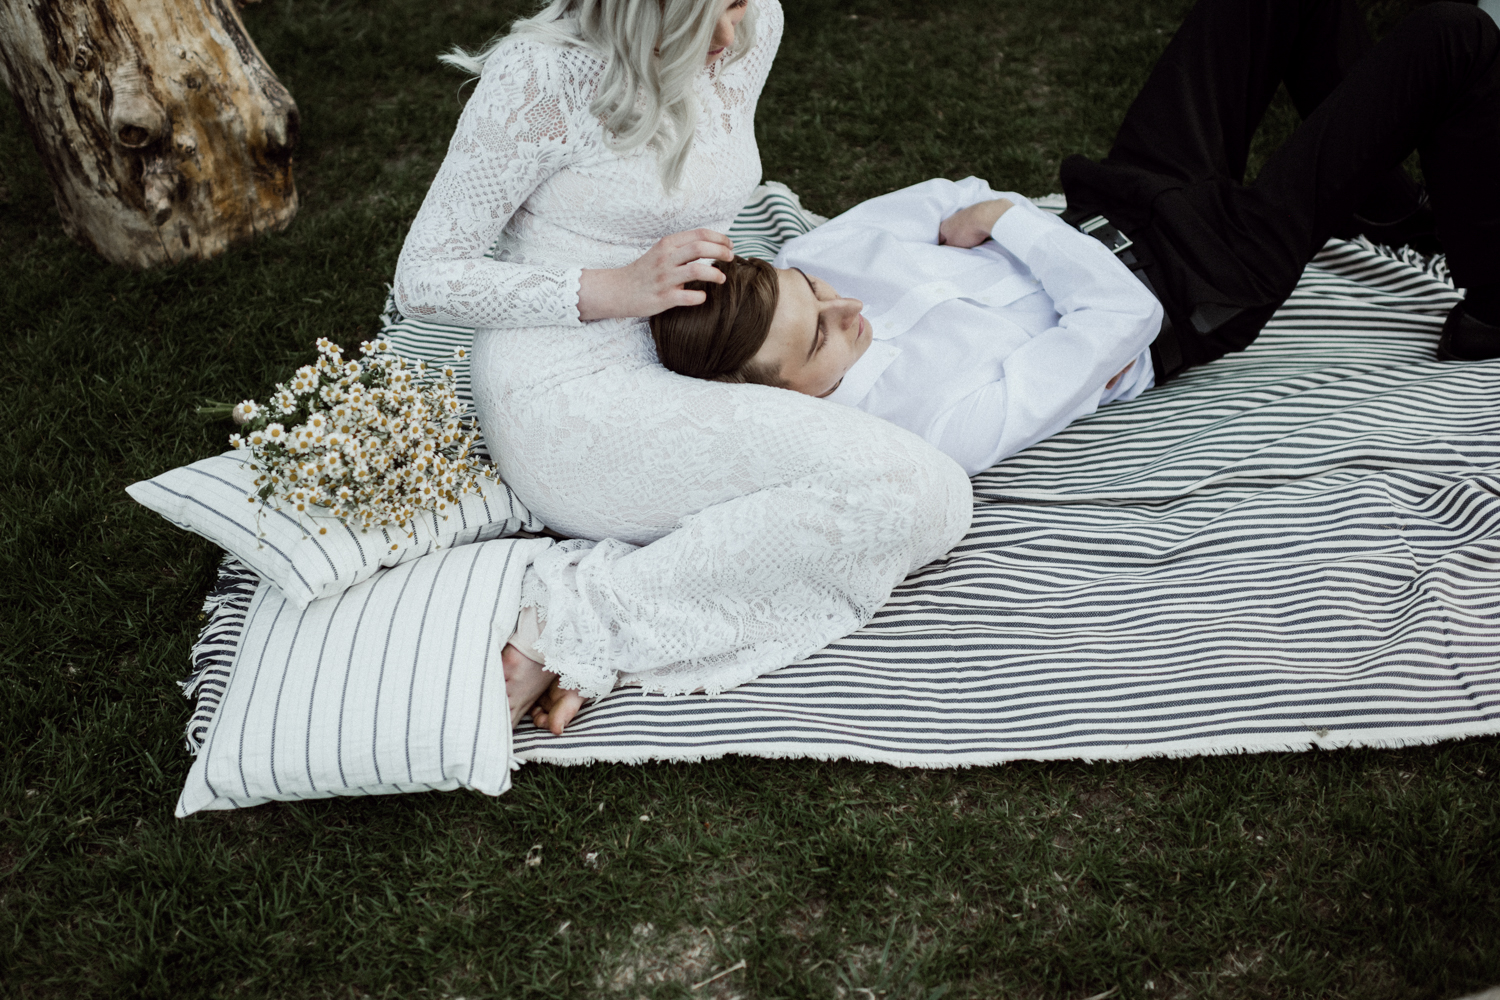 groom lying in bride's lap on picnic blanket